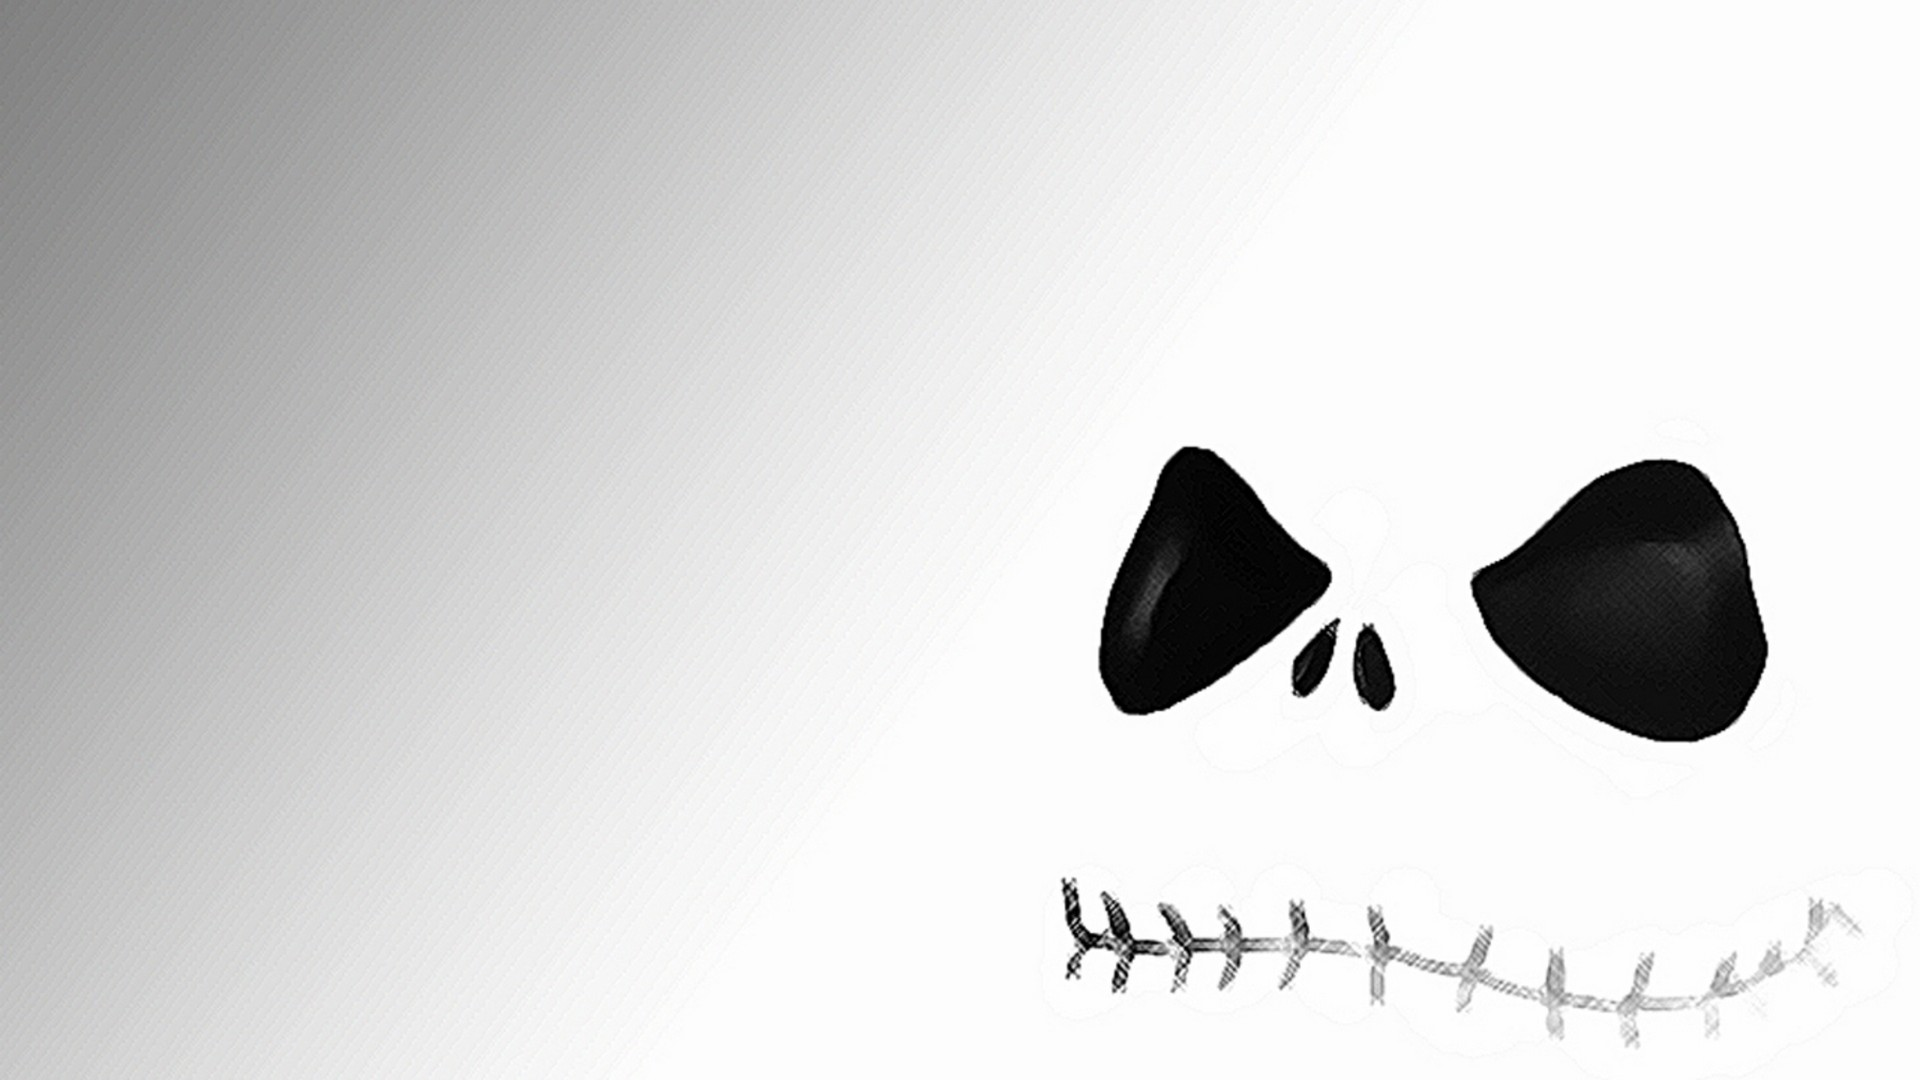 Wallpapers The Nightmare Before Christmas with high-resolution 1920x1080 pixel. You can use this poster wallpaper for your Desktop Computers, Mac Screensavers, Windows Backgrounds, iPhone Wallpapers, Tablet or Android Lock screen and another Mobile device